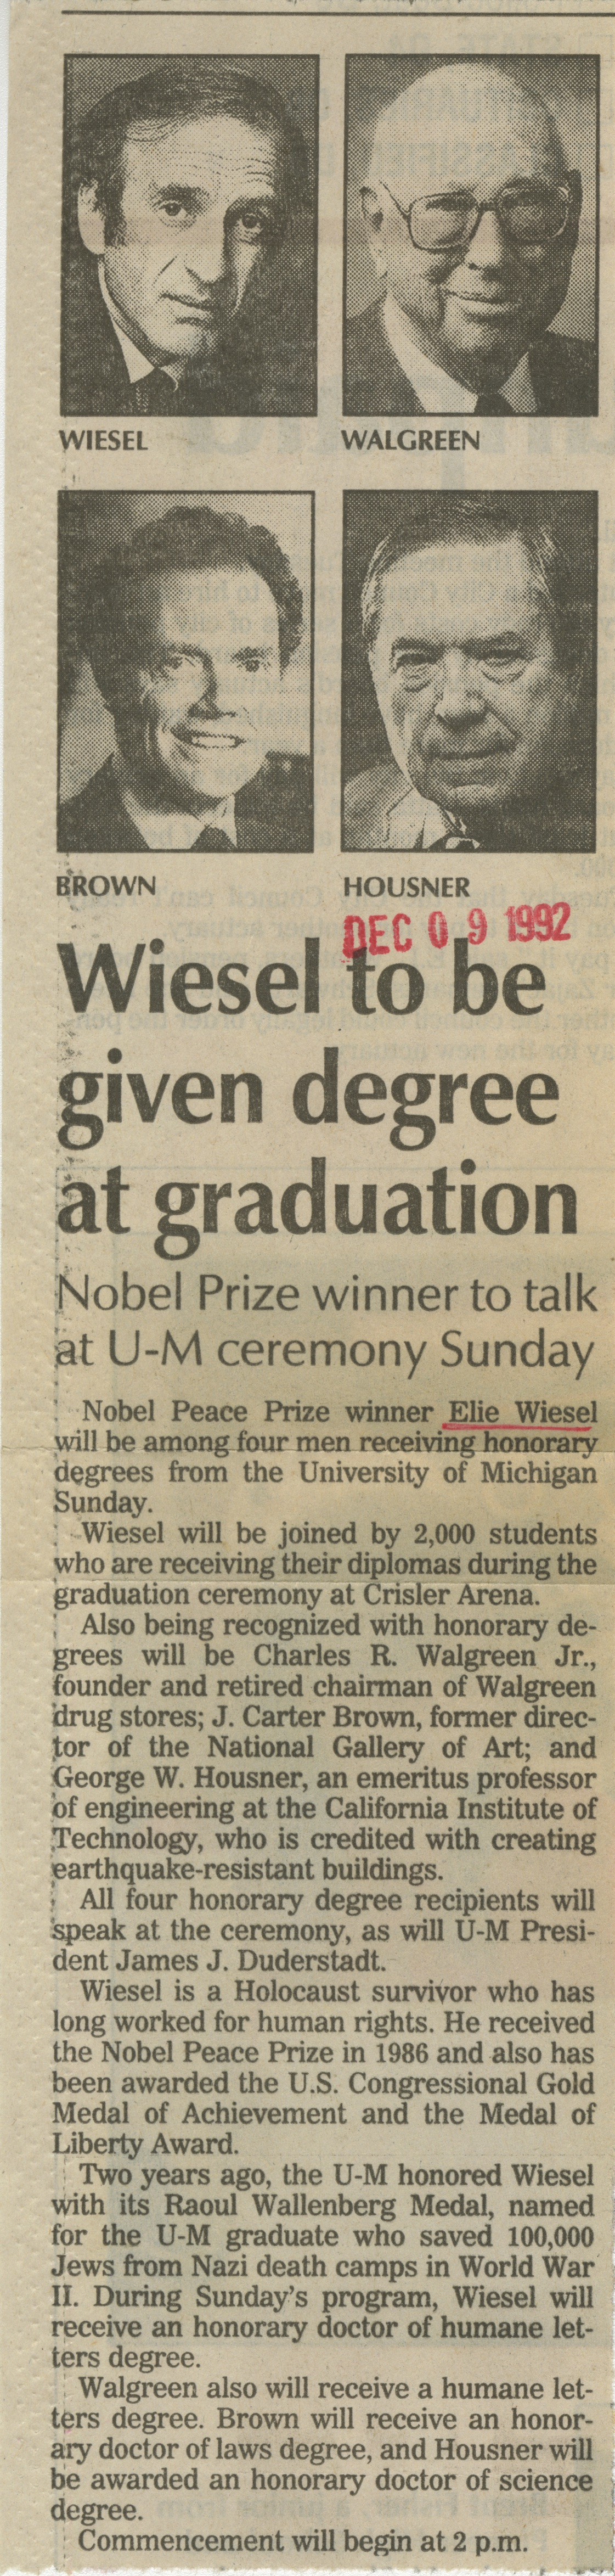 Wiesel To Be Given Degree At Graduation image